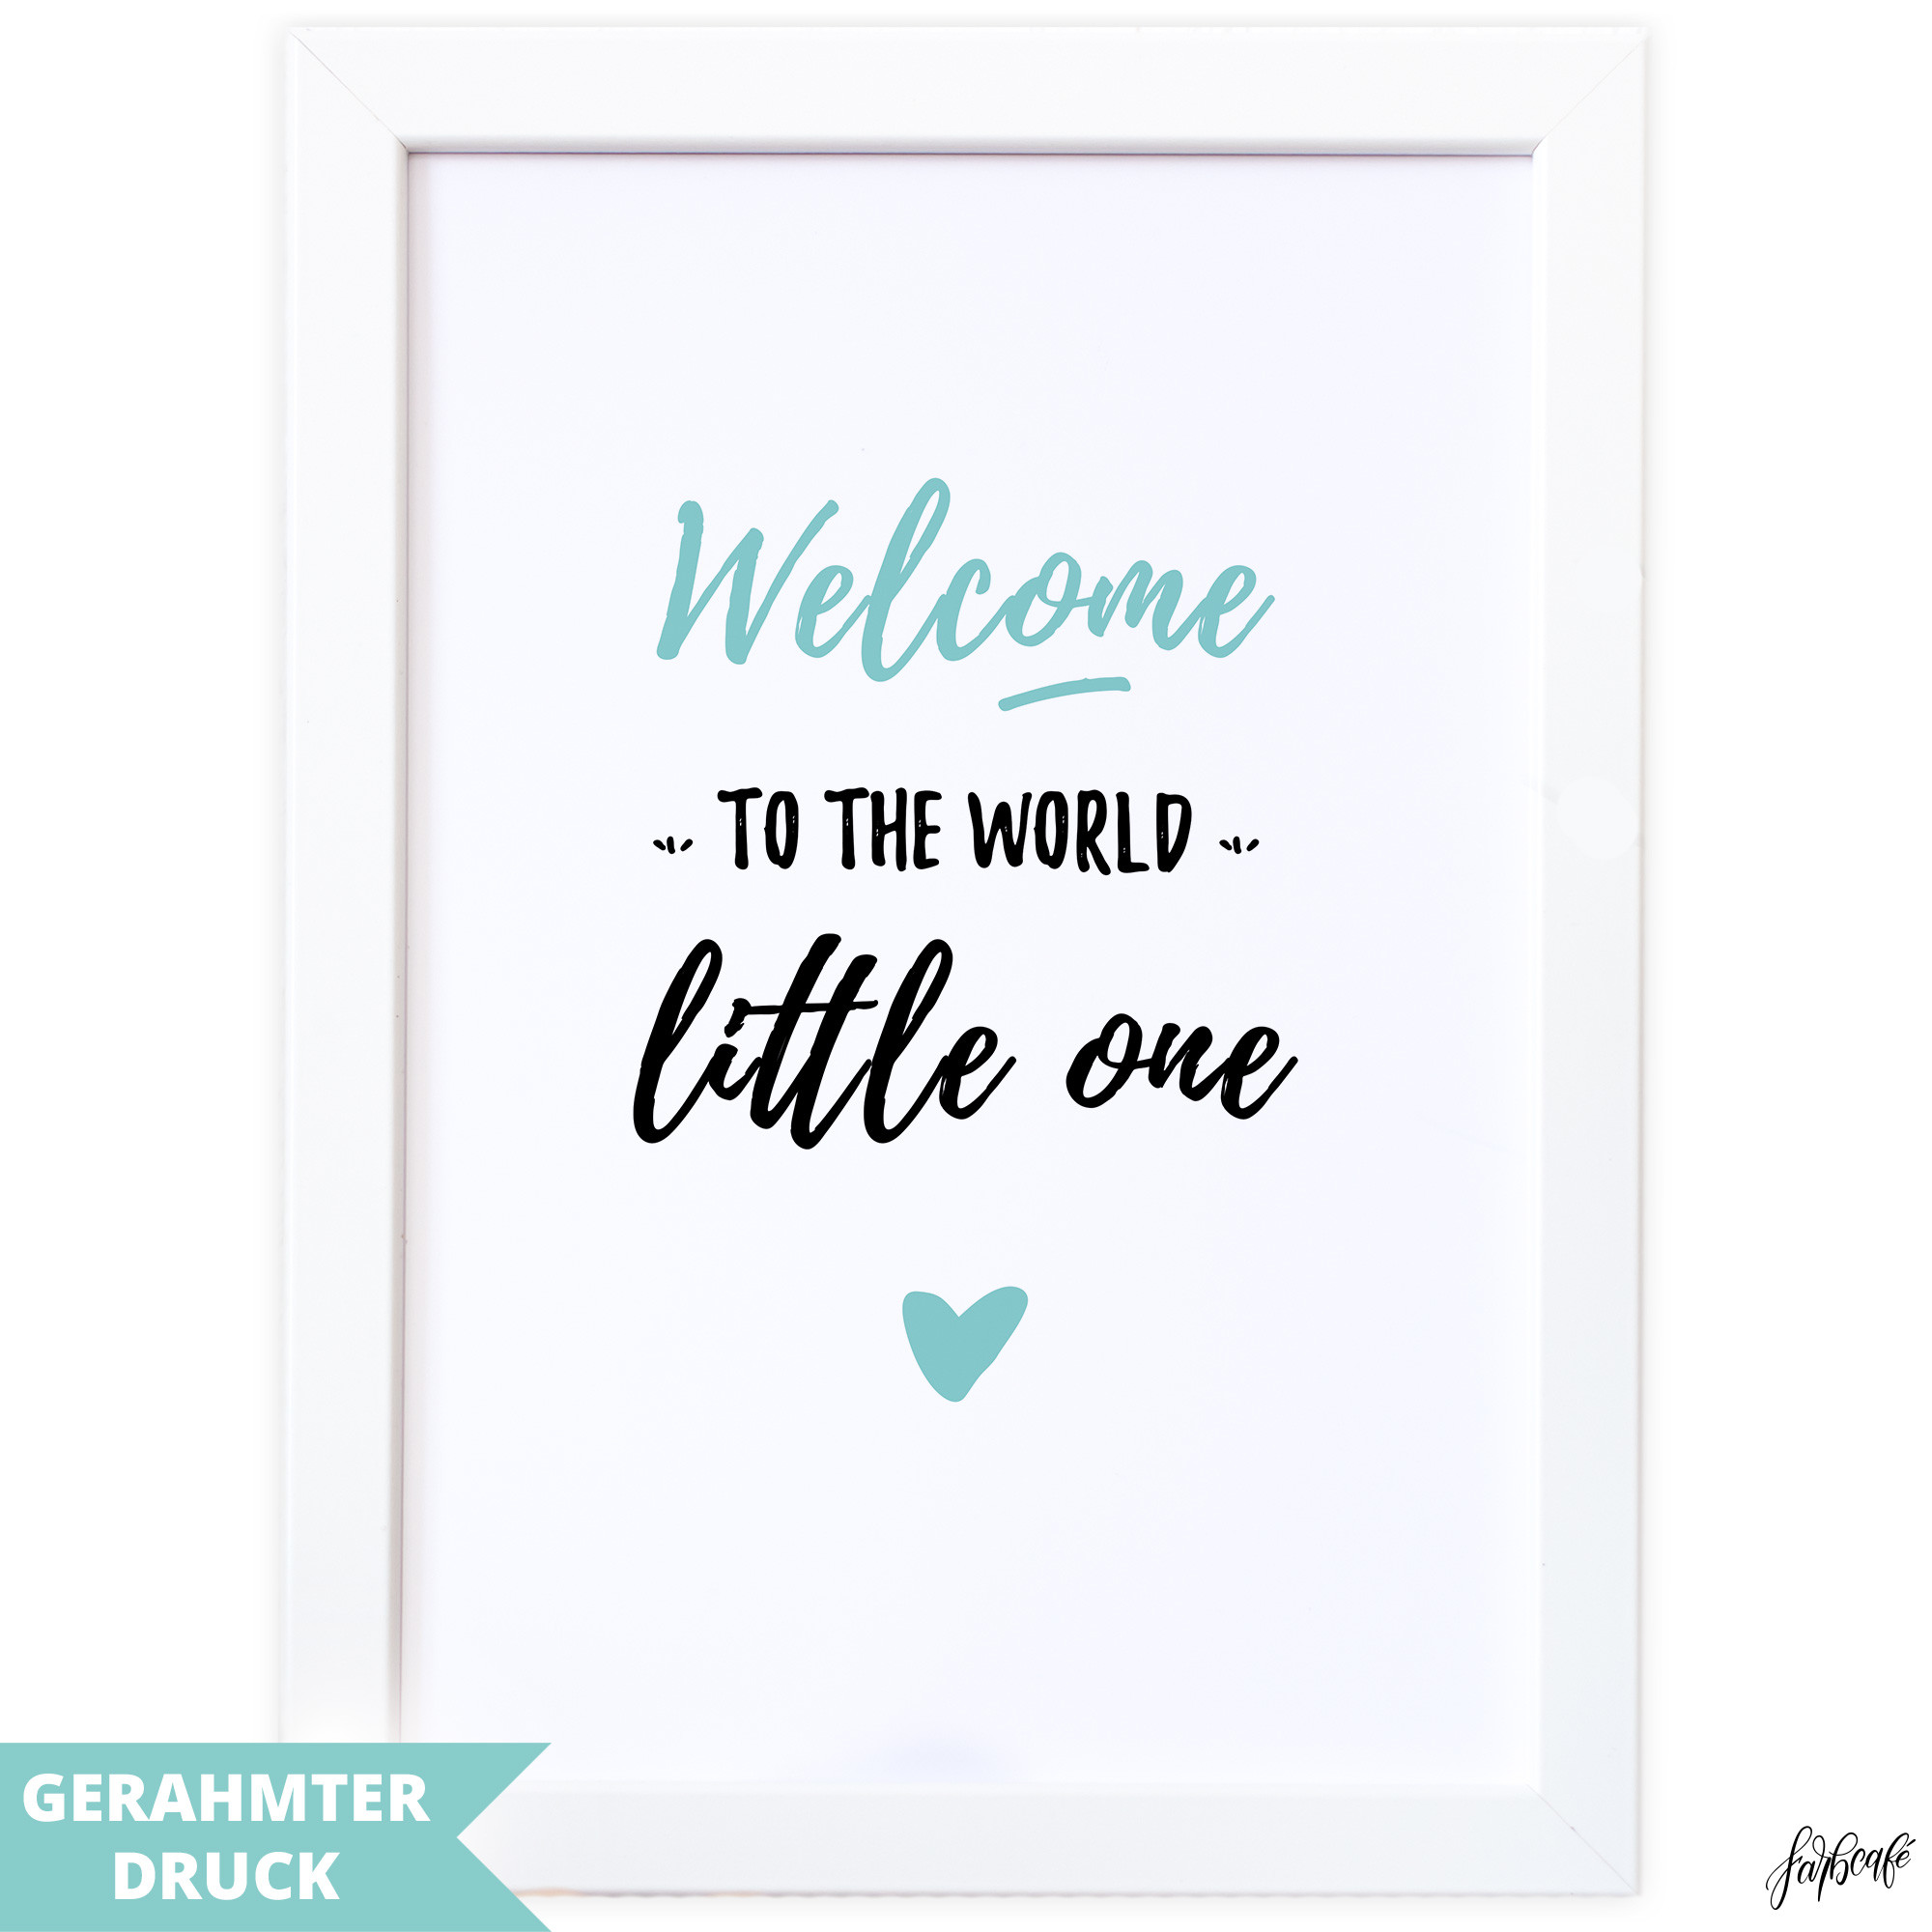 poster a4 kunstdruck mit rahmen 21x30 cm welcome to the world little one farbcafe. Black Bedroom Furniture Sets. Home Design Ideas